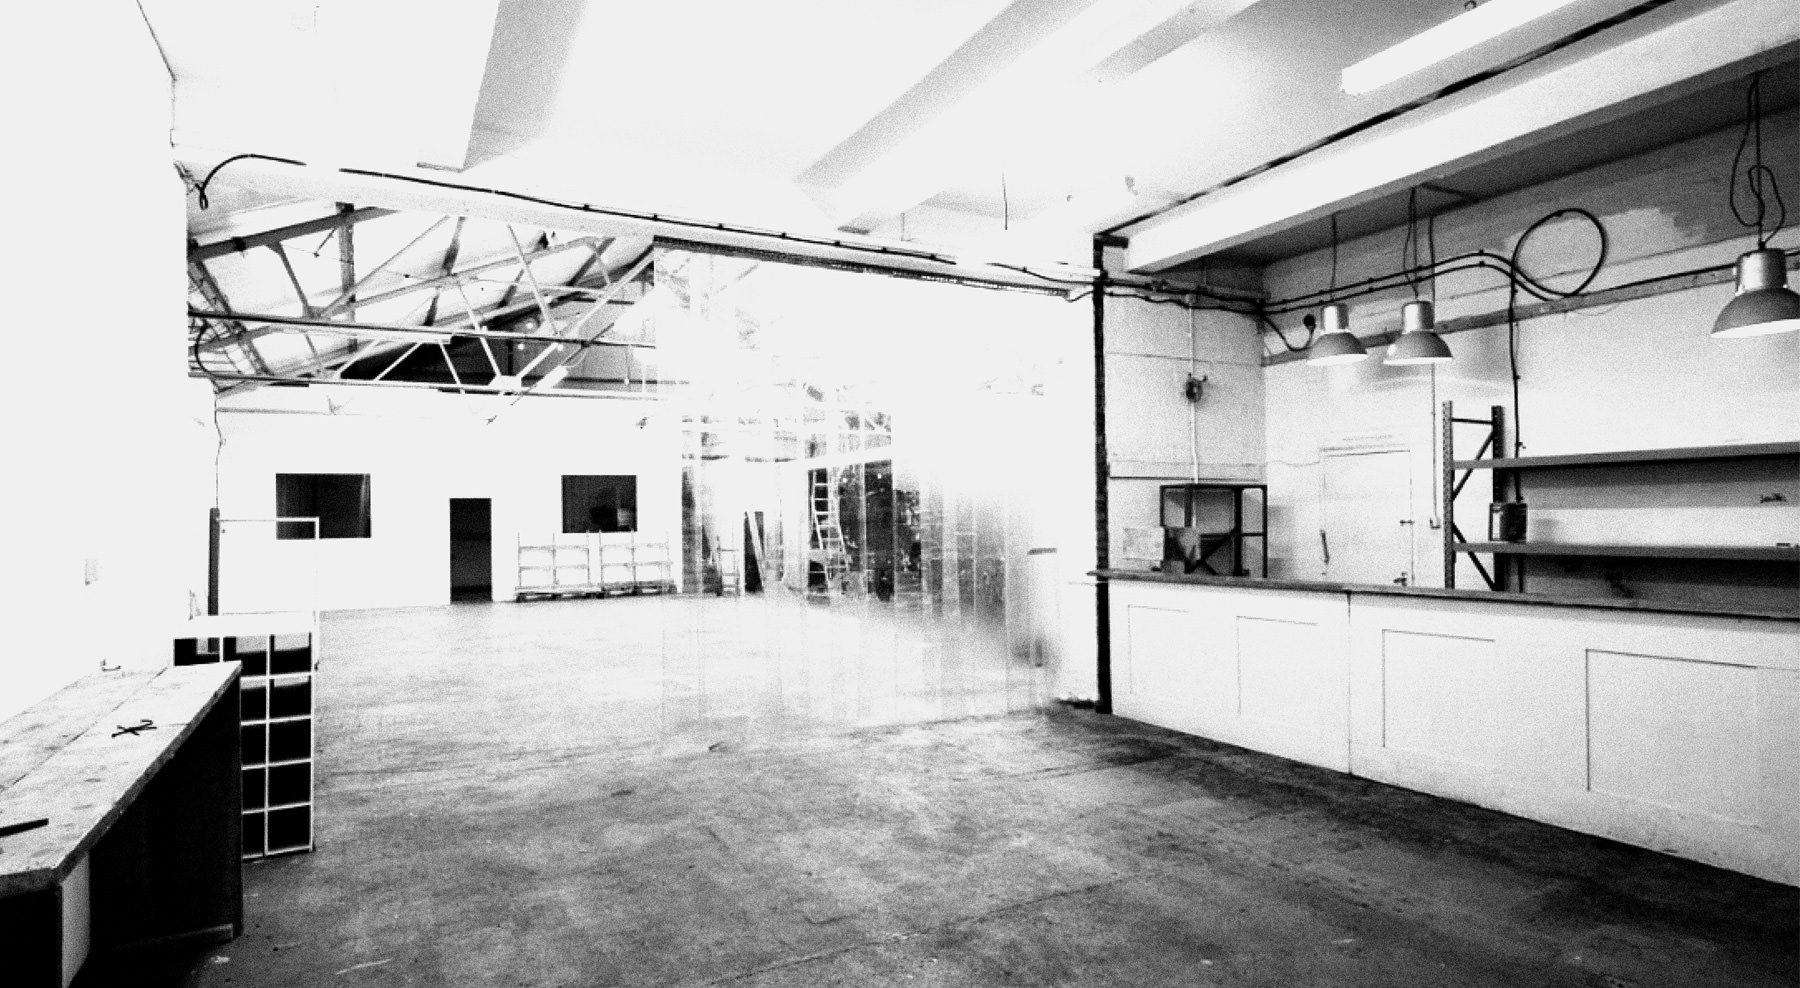 black-swan-studios-se1-london-event-and-pop-up-space-to-hire--22